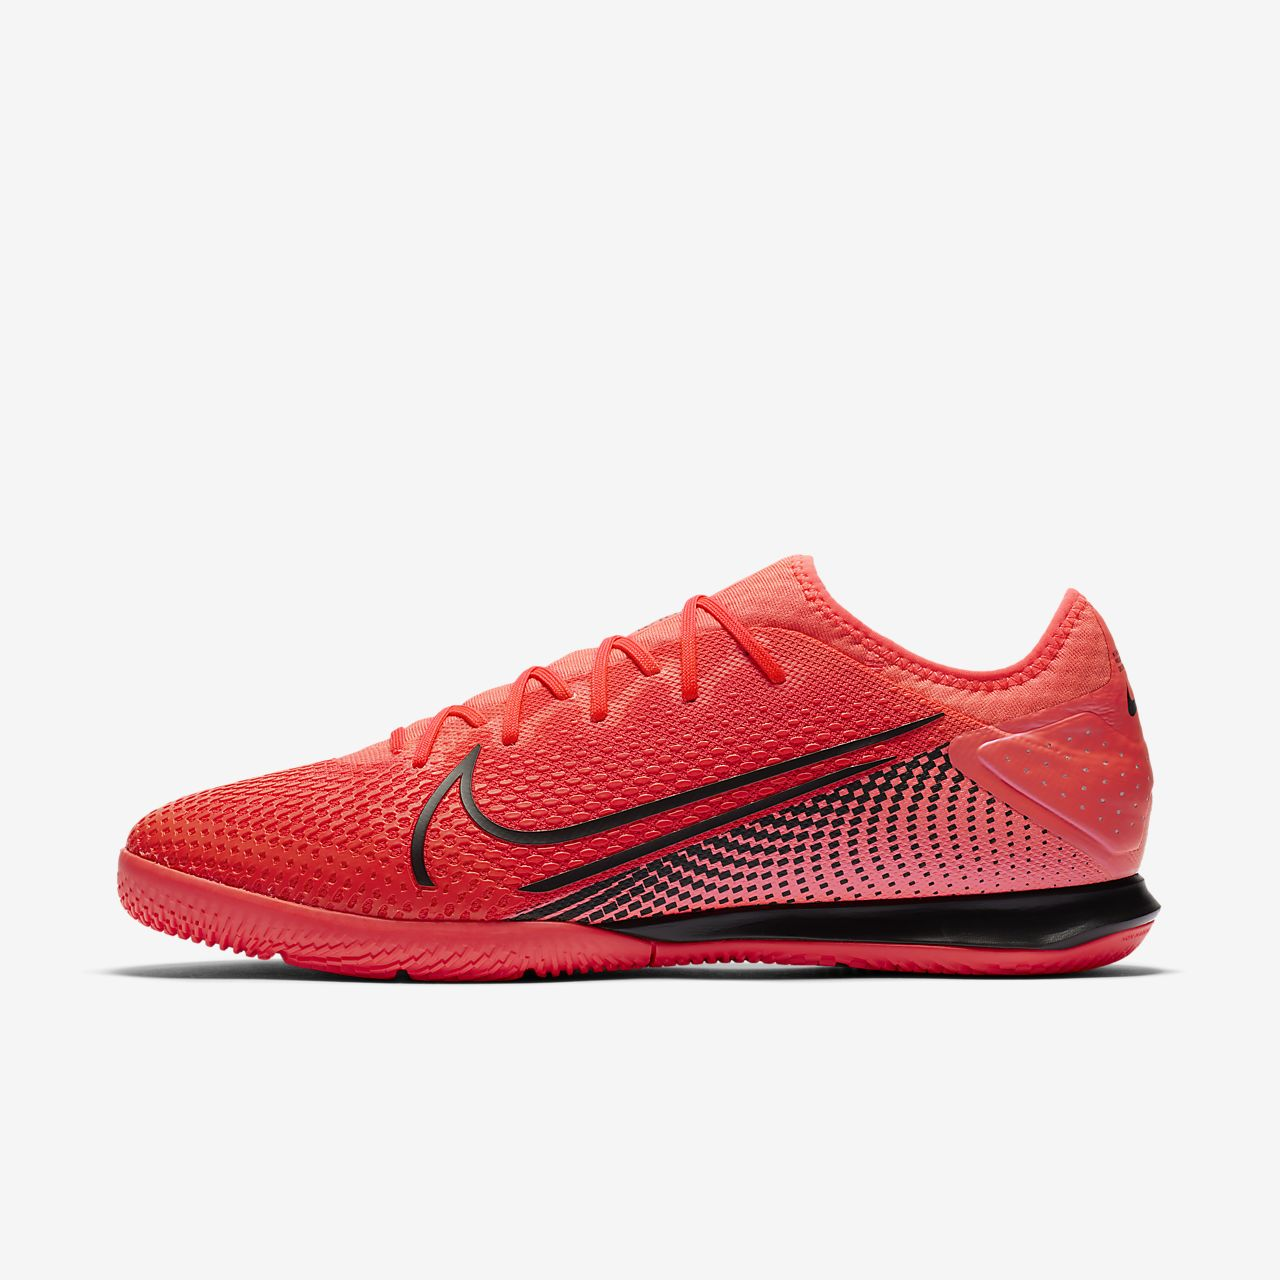 Nike Free Rn Motion Flyknit On Foot canadian poker.ca